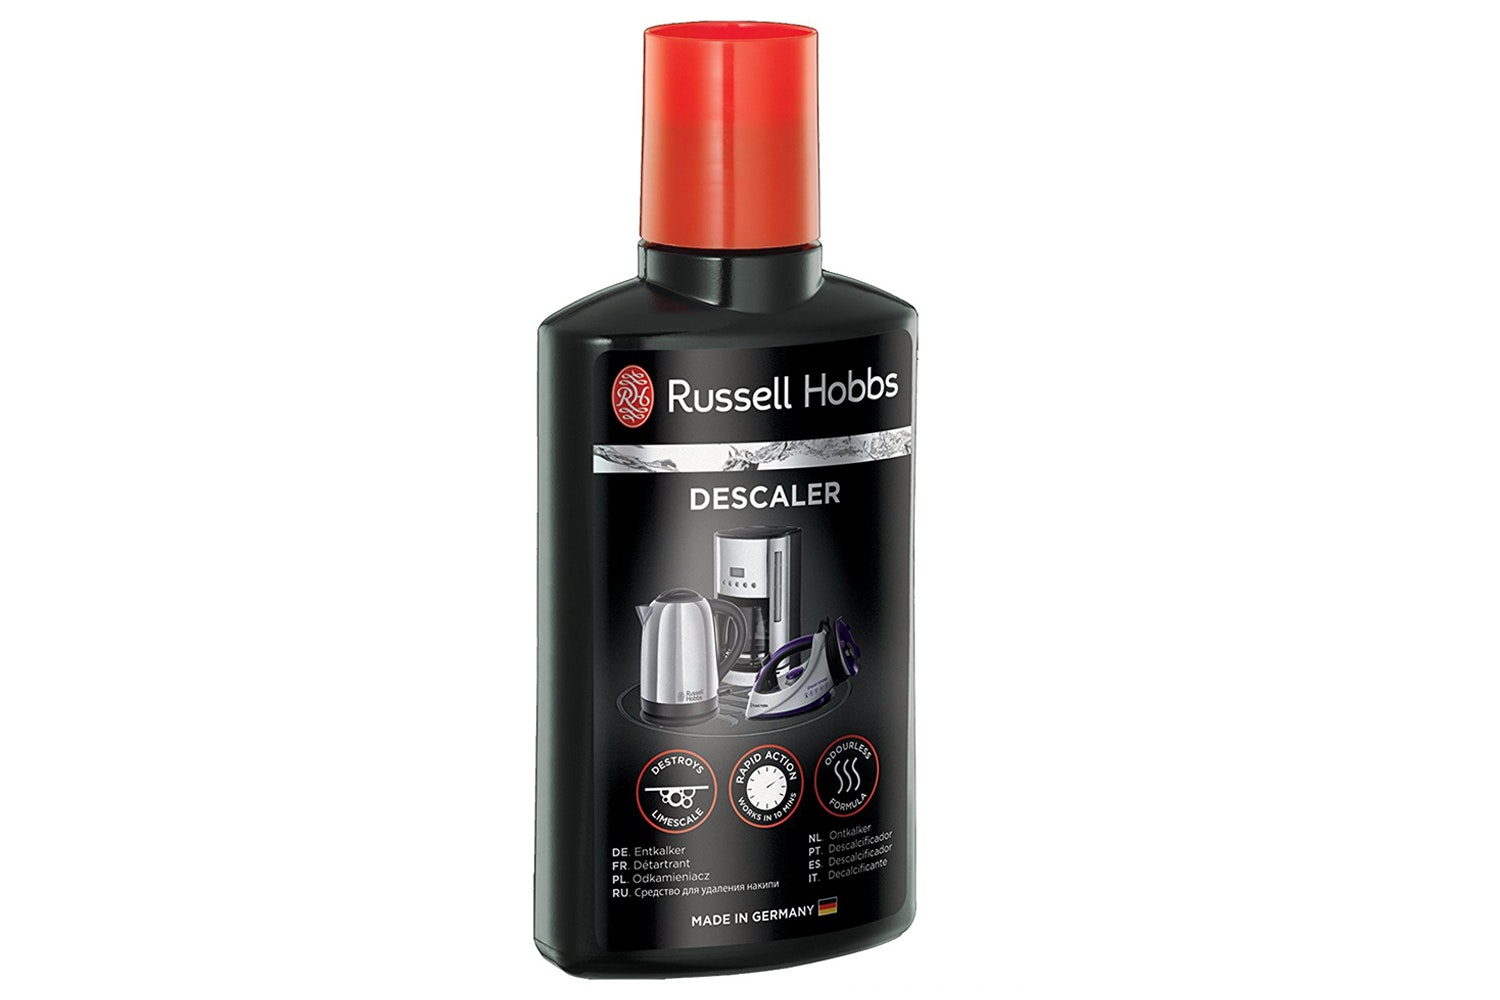 Russell Hobbs Multi Purpose Descaler